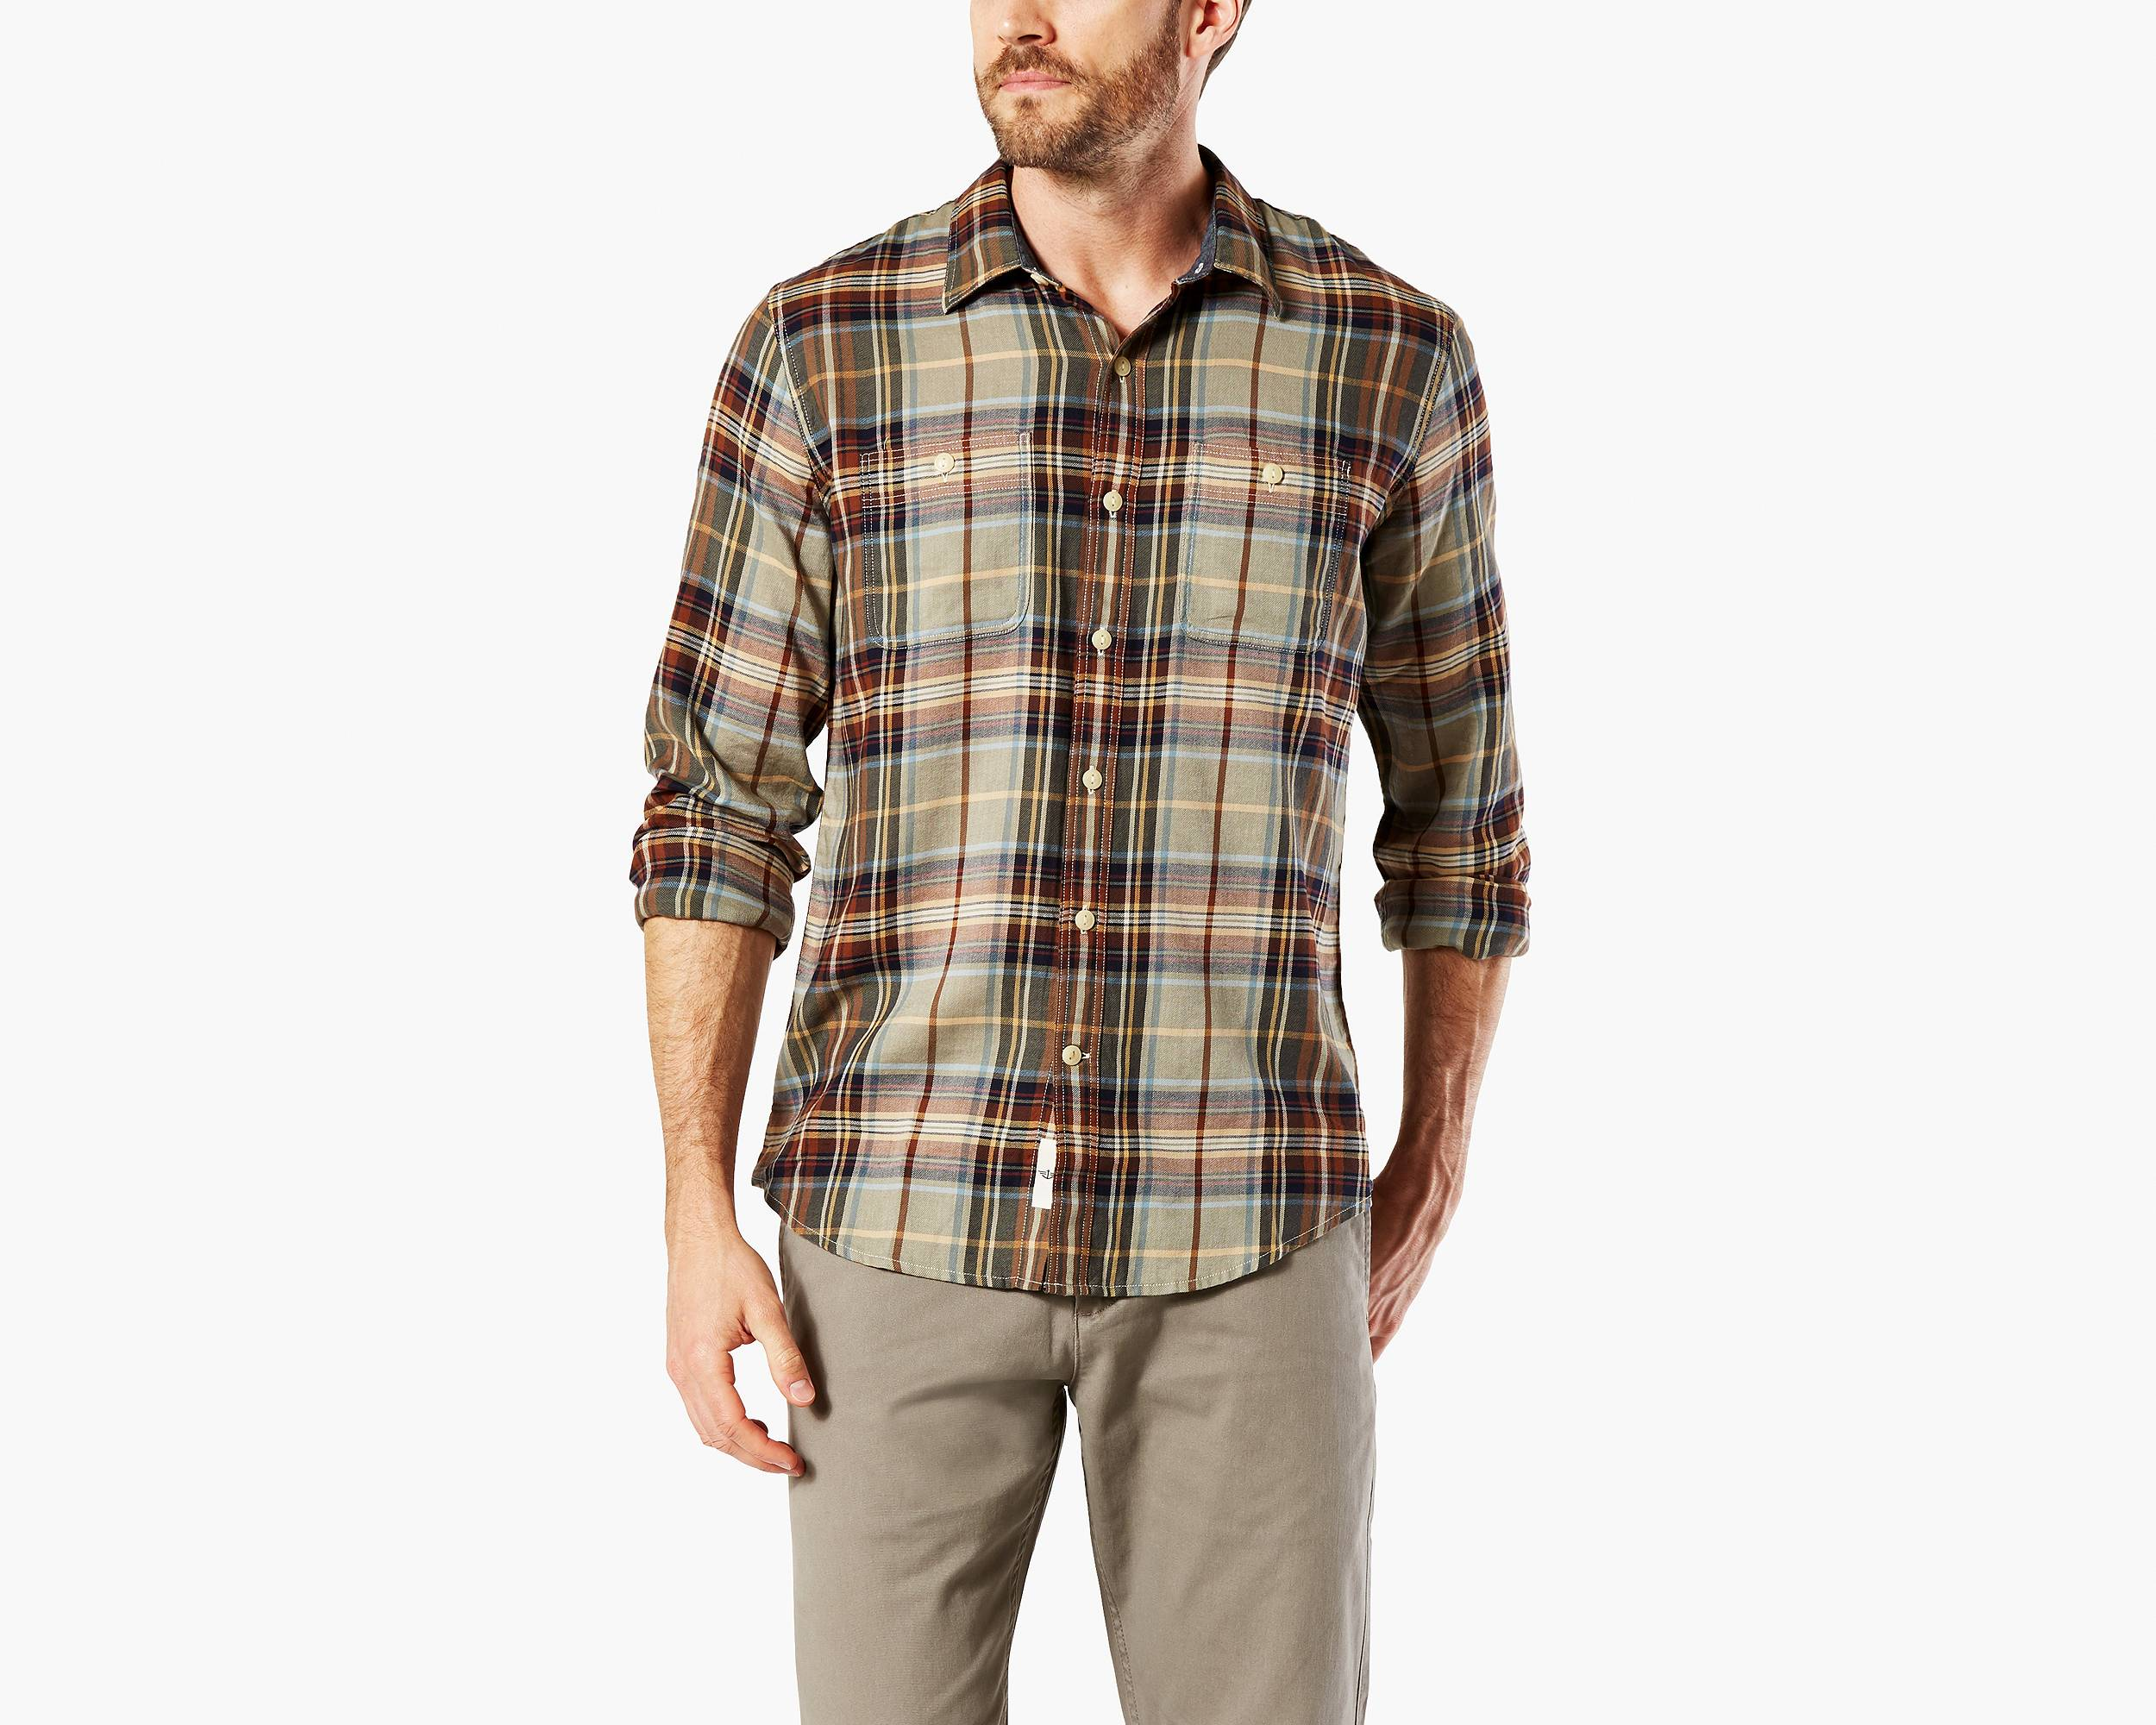 Mens Check amp Plaid Dress Shirts  Nordstrom